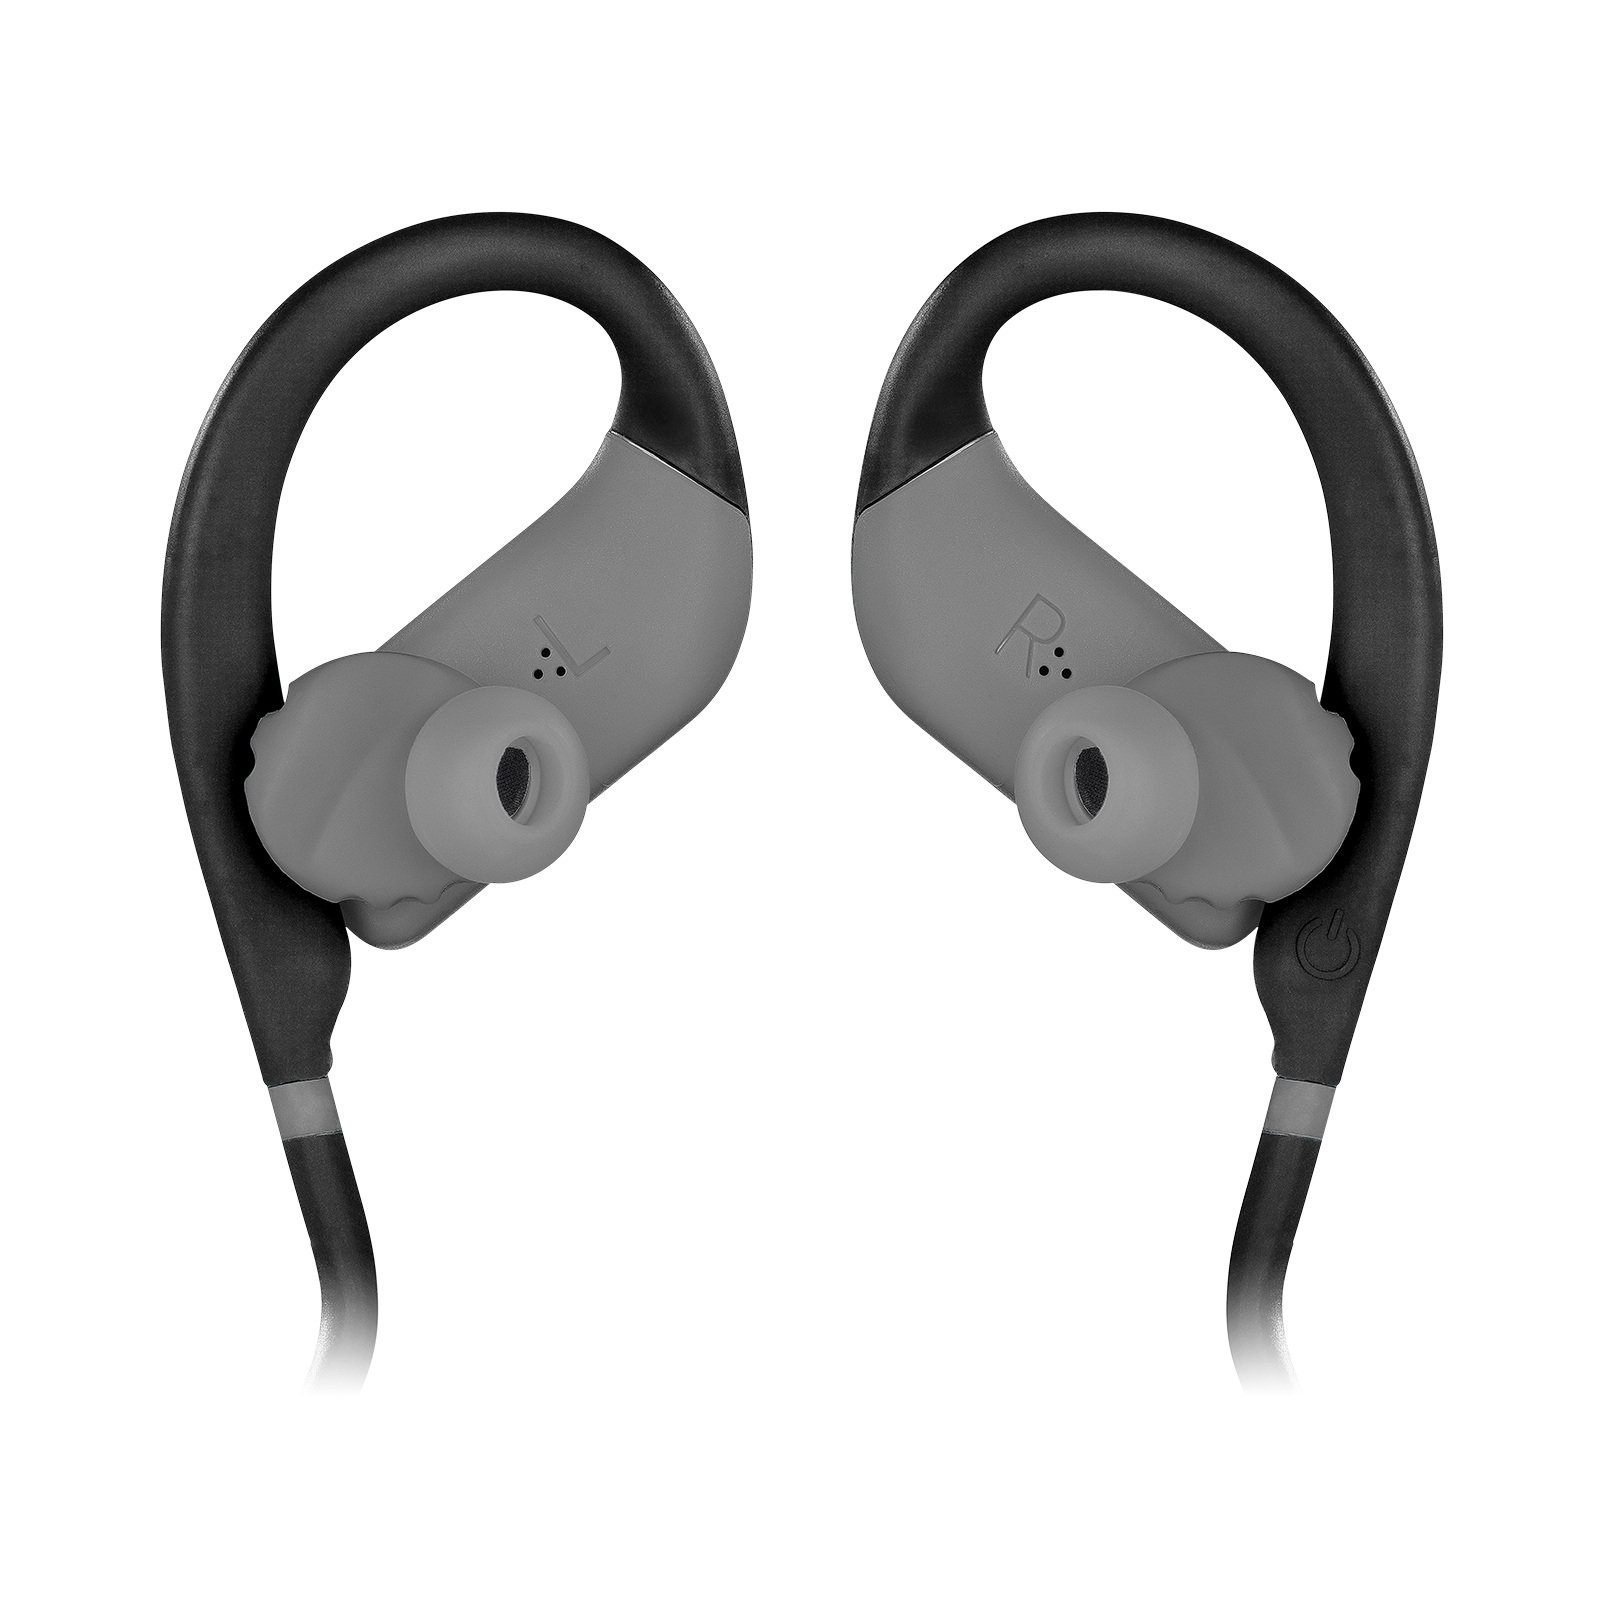 1b5d4d86f37 JBL Endurance DIVE | Waterproof Wireless In-Ear Sport Headphones ...